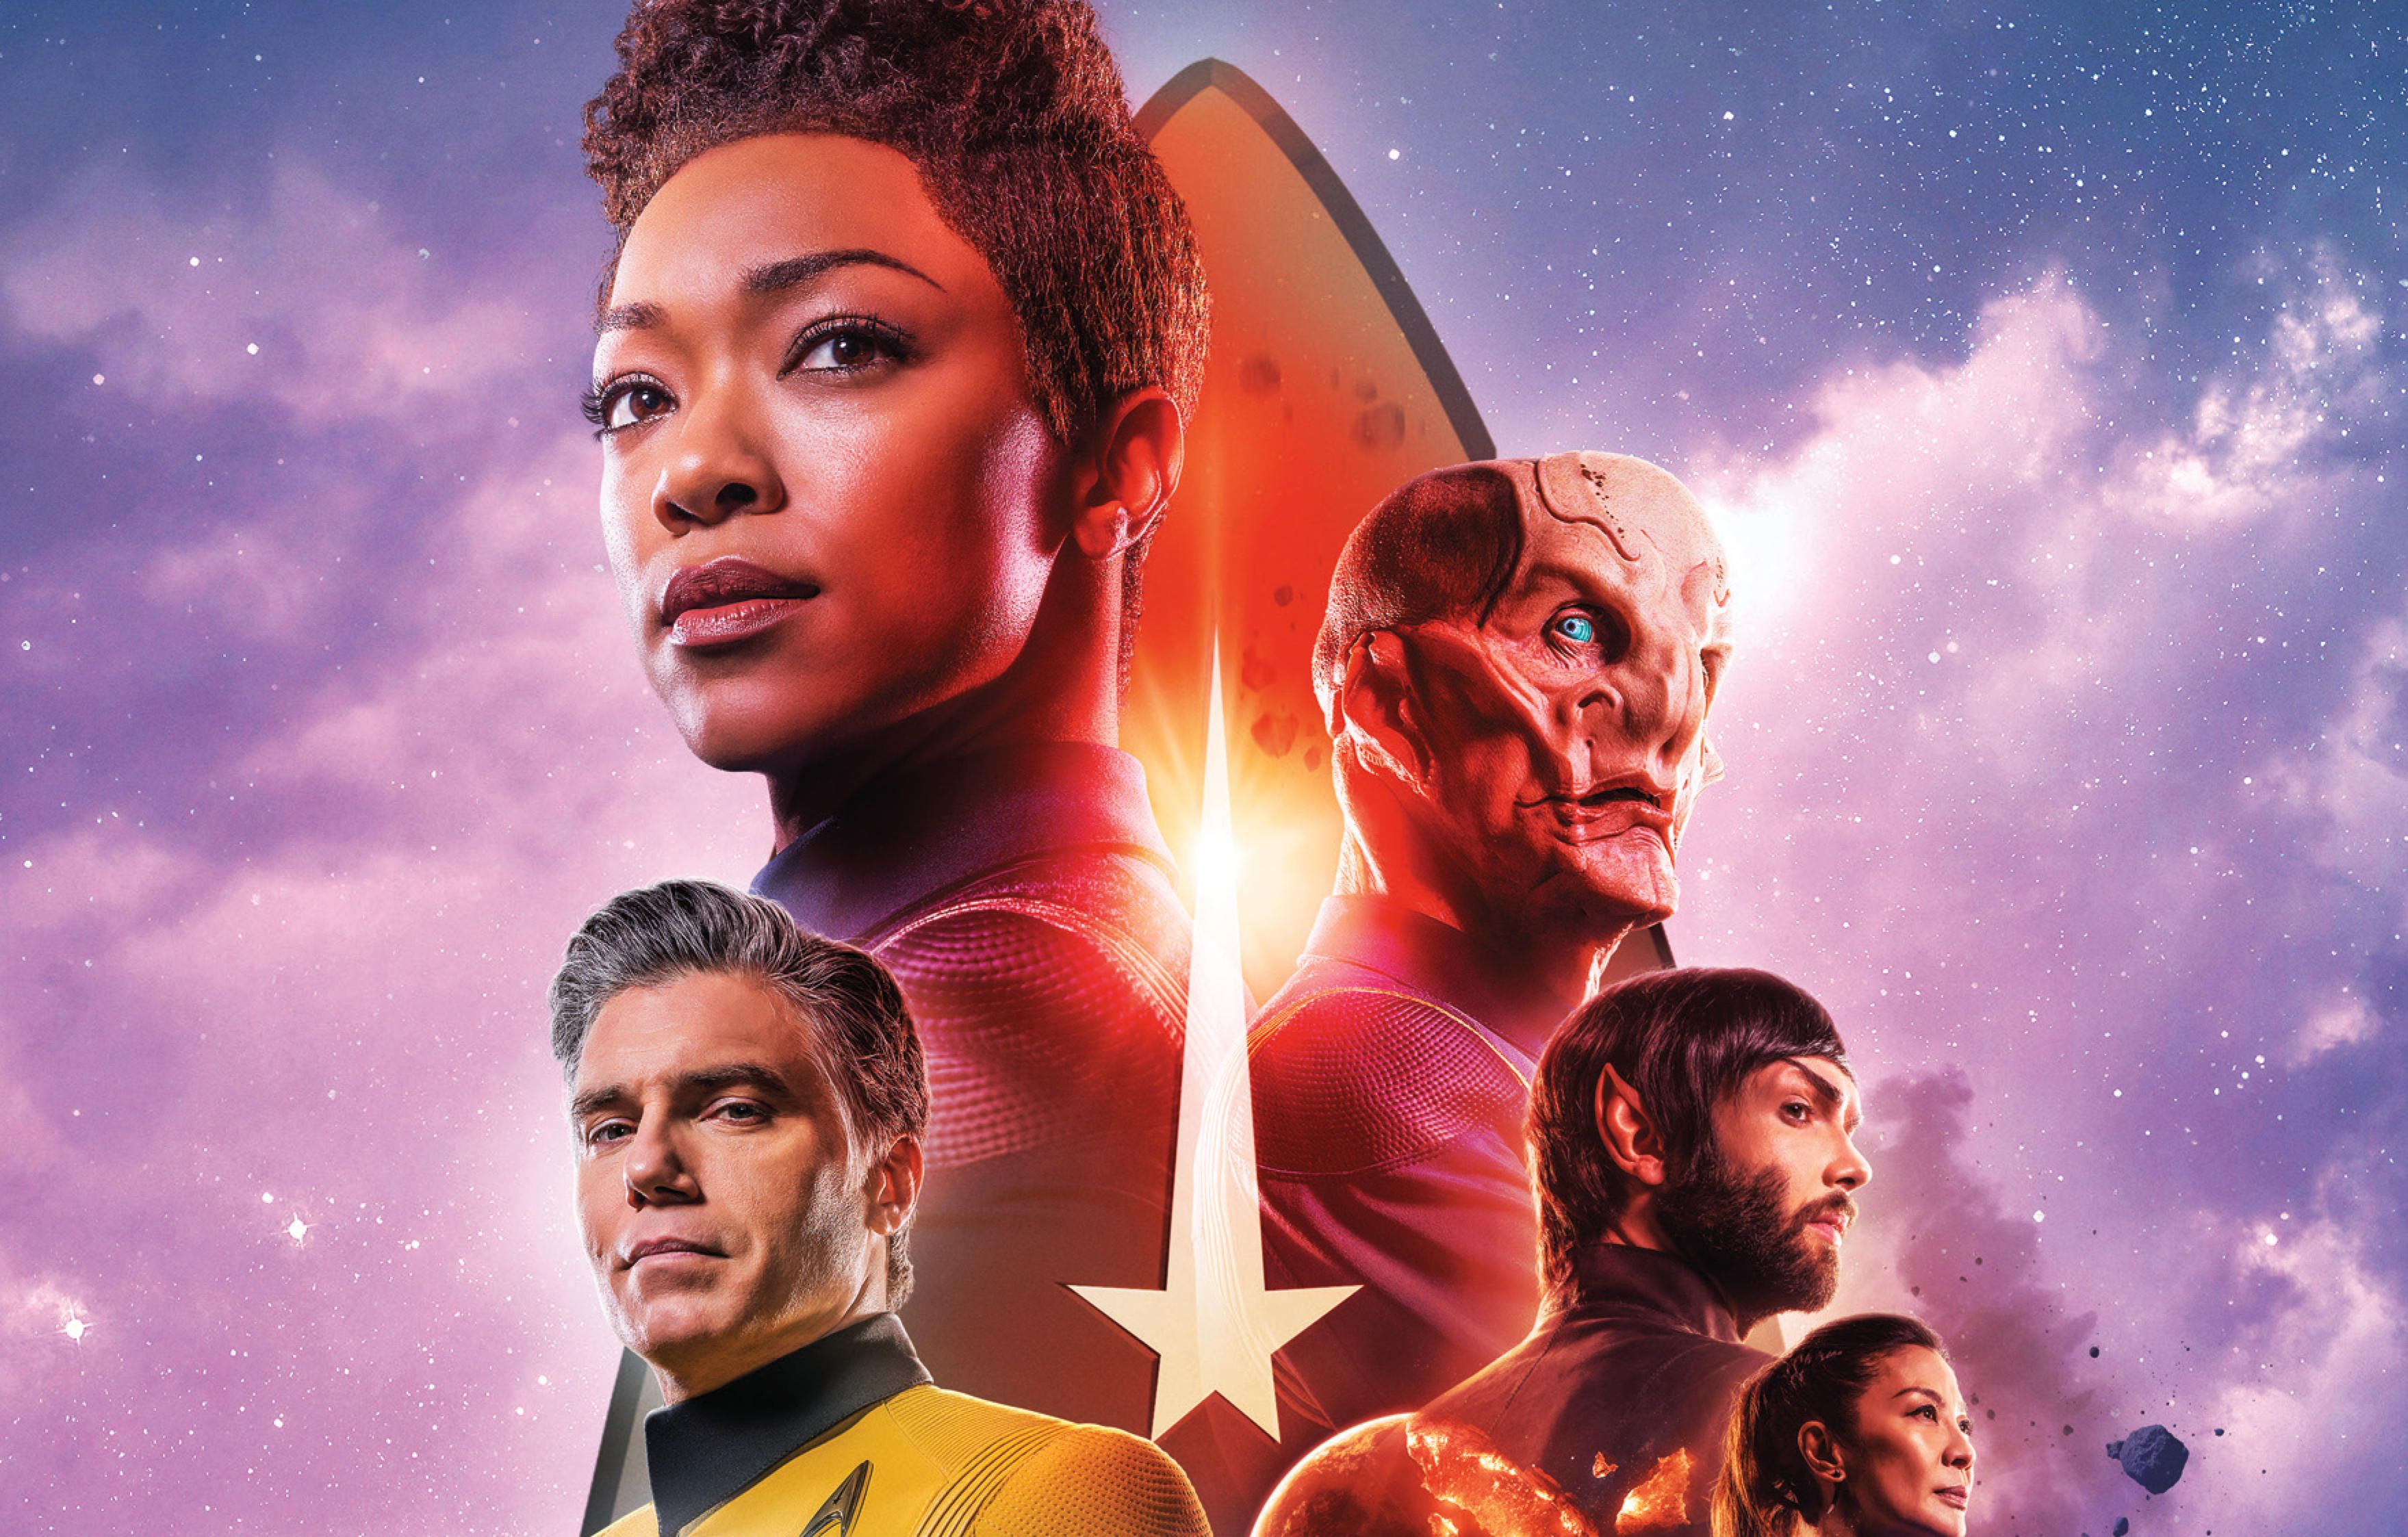 Star trek discovery season 2 poster hd tv shows 4k - Tv series wallpaper 4k ...